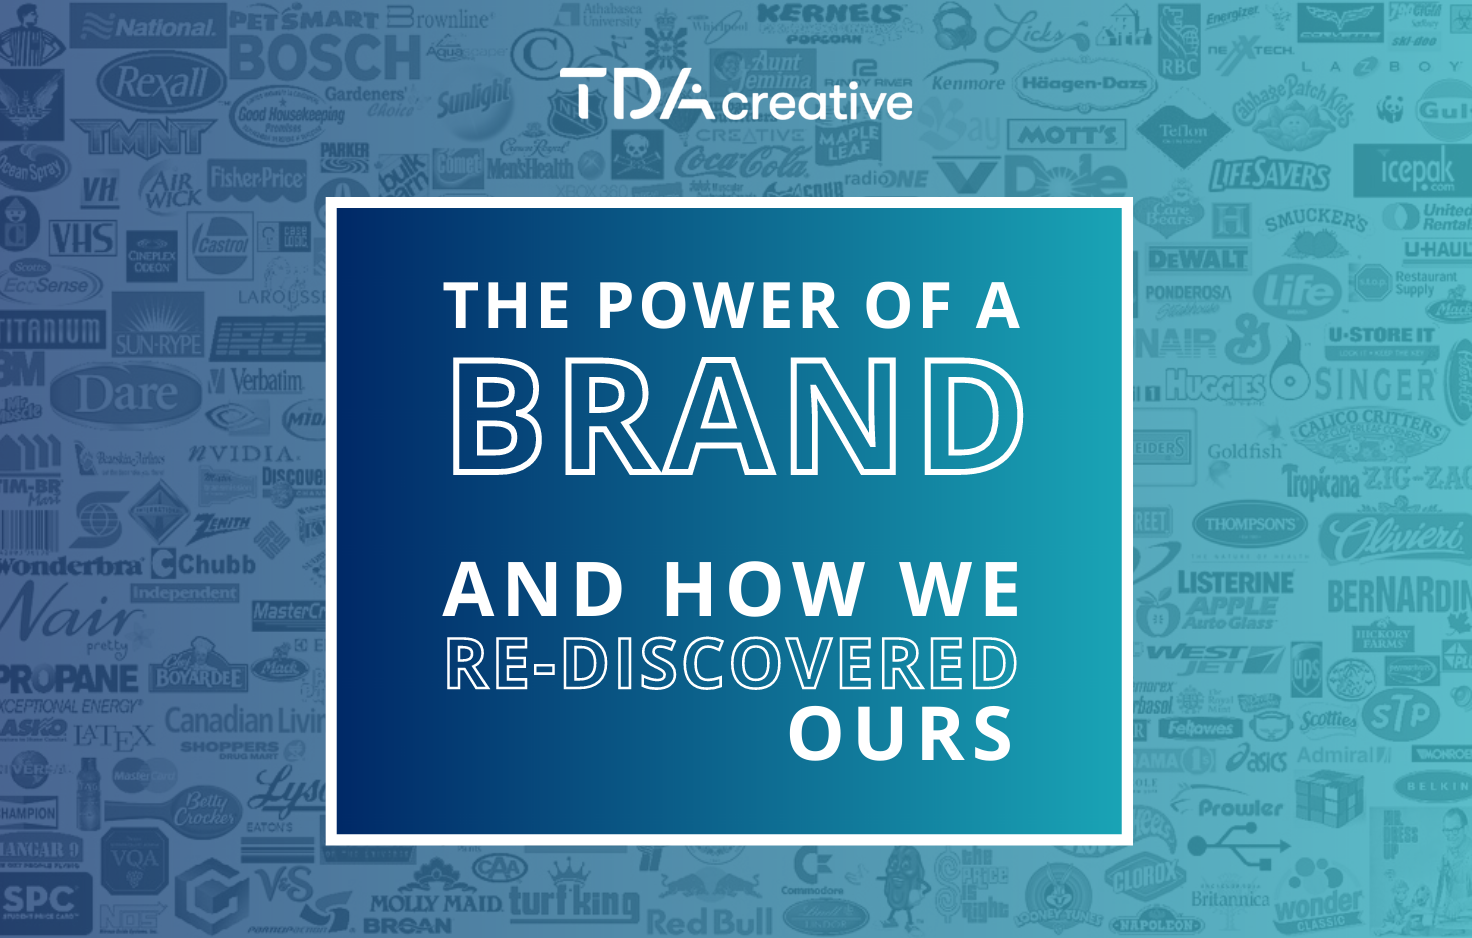 The power of a BRAND (and how we re-discovered ours)